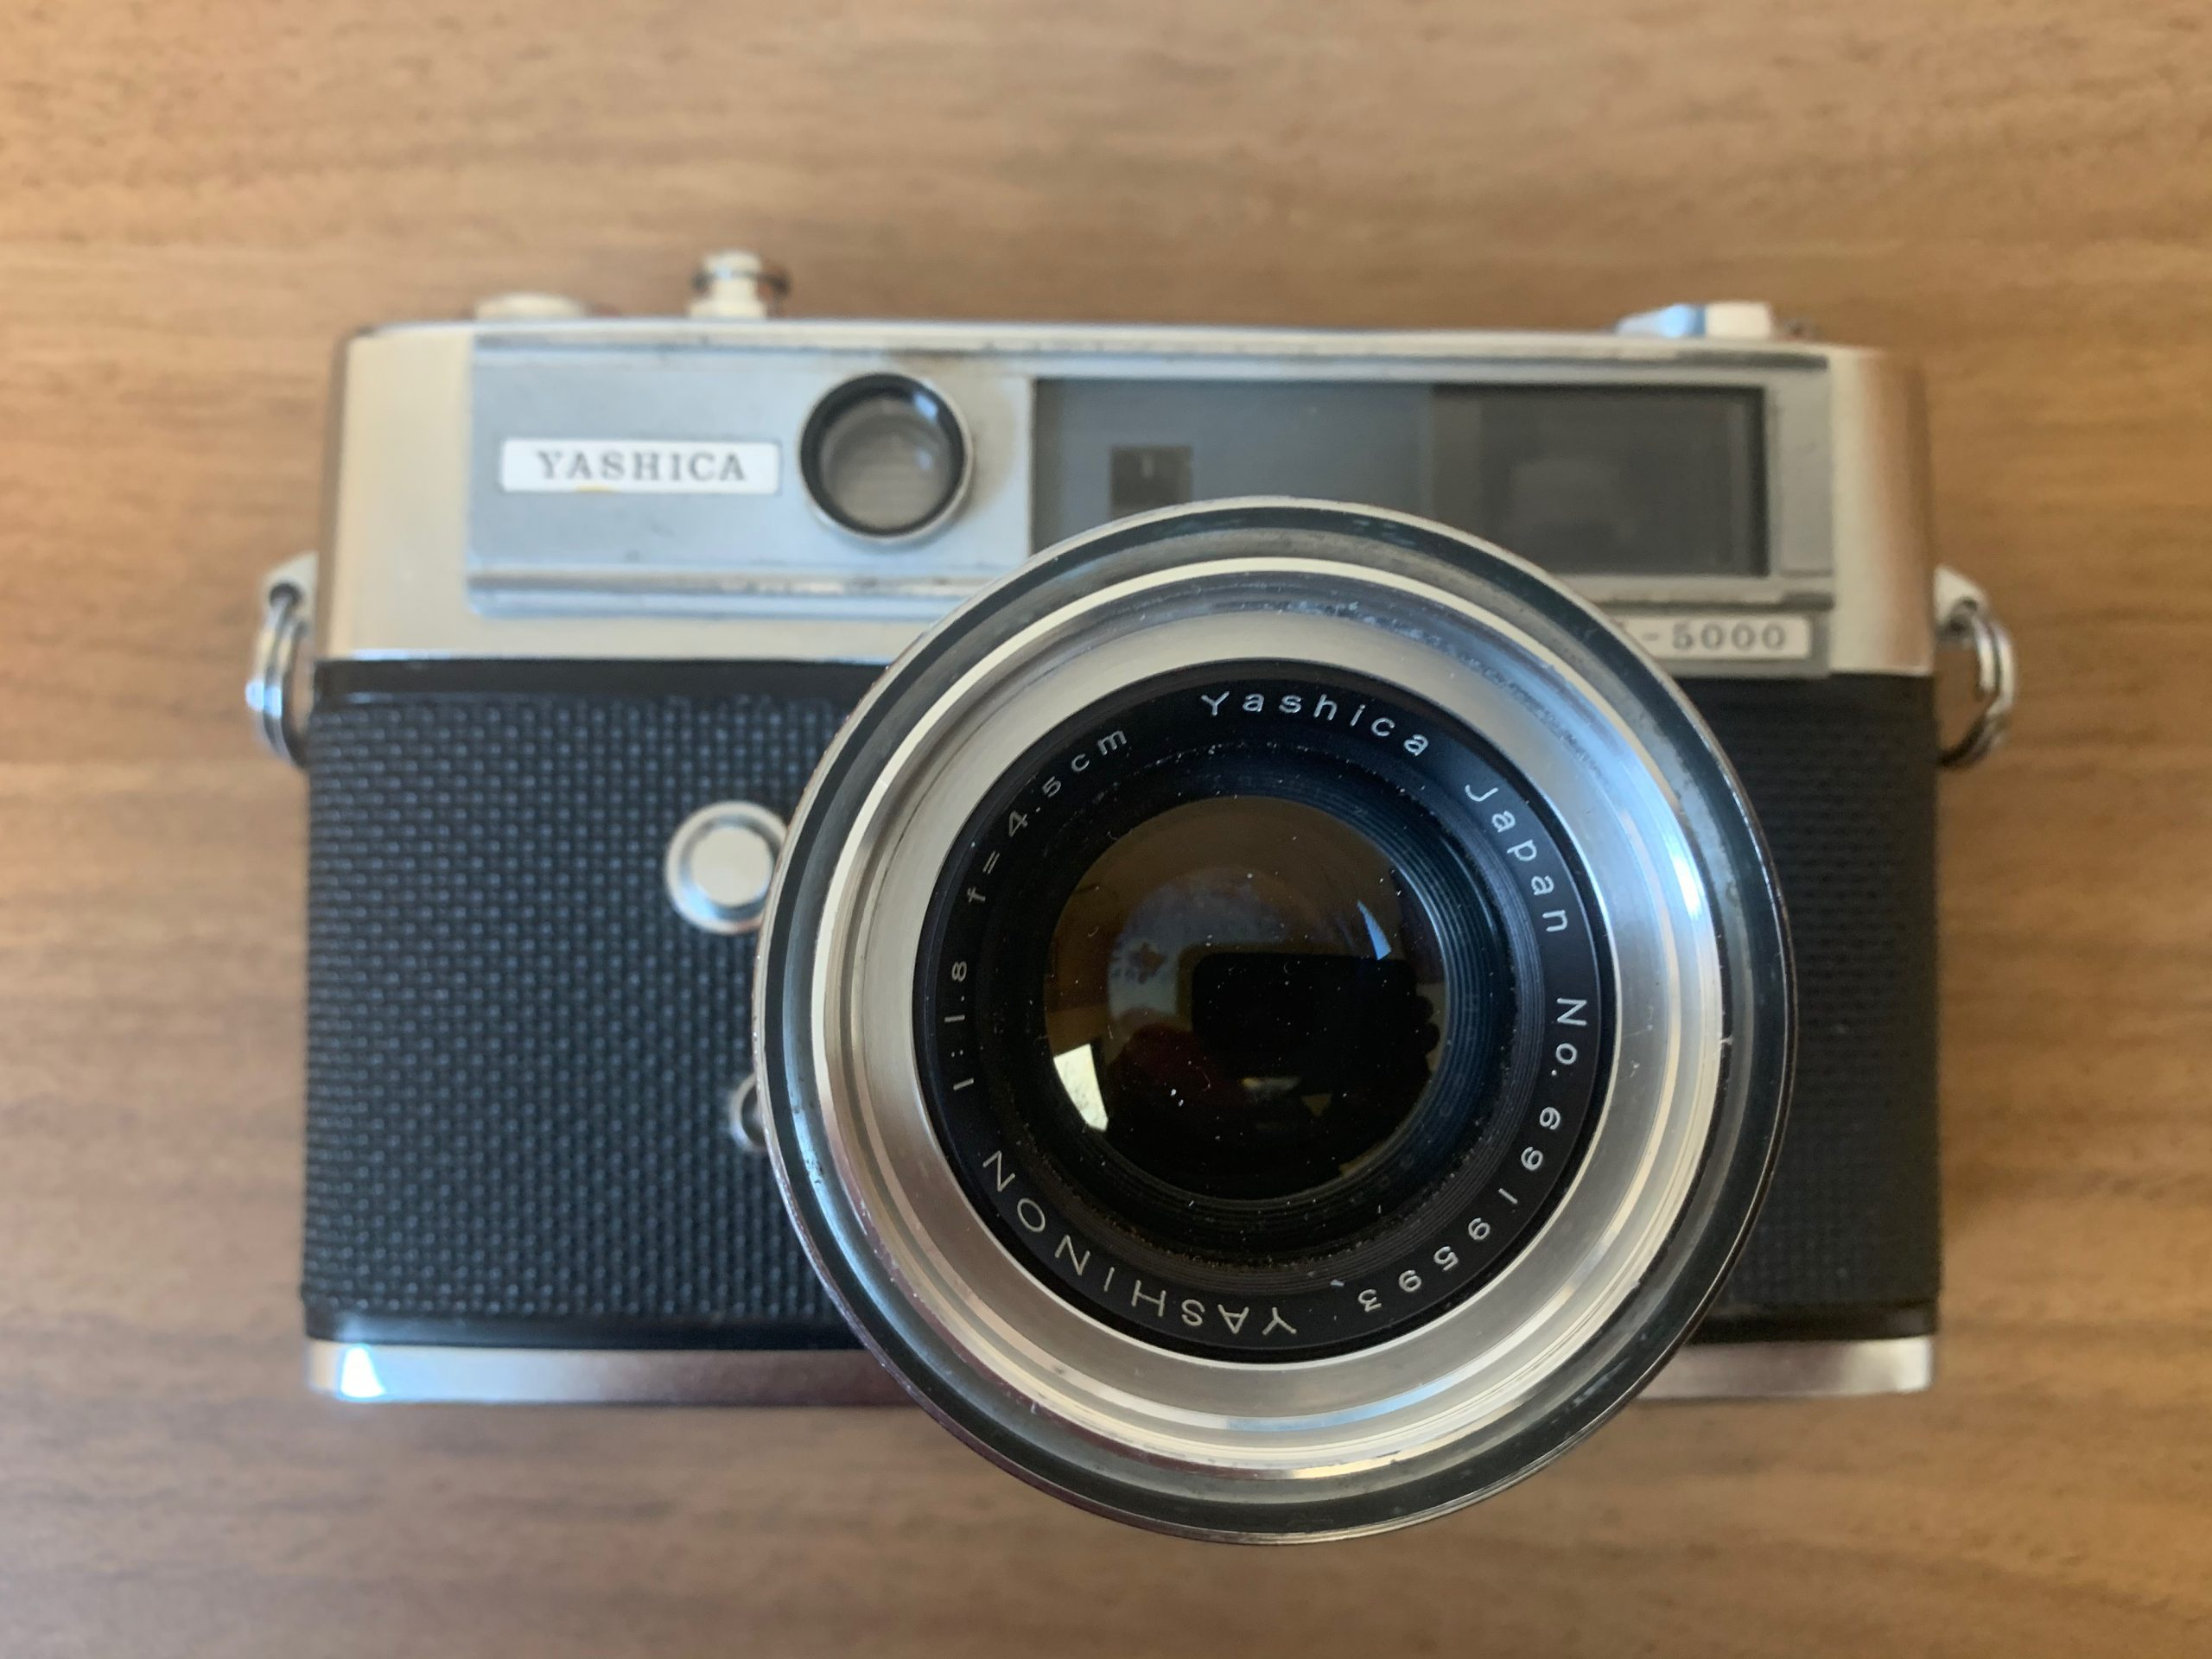 Yashica Lynx 5000 – Spares or Repair